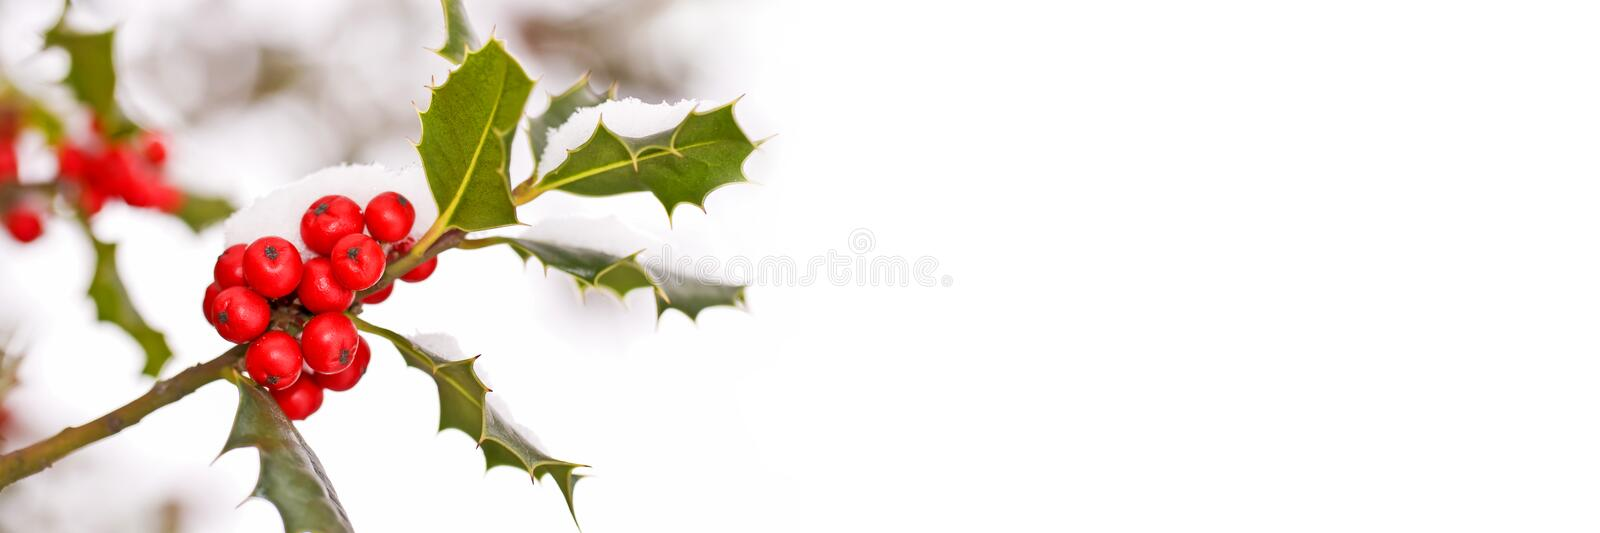 Close up of a branch of holly with red berries with snow, panoramic winter background royalty free stock photography